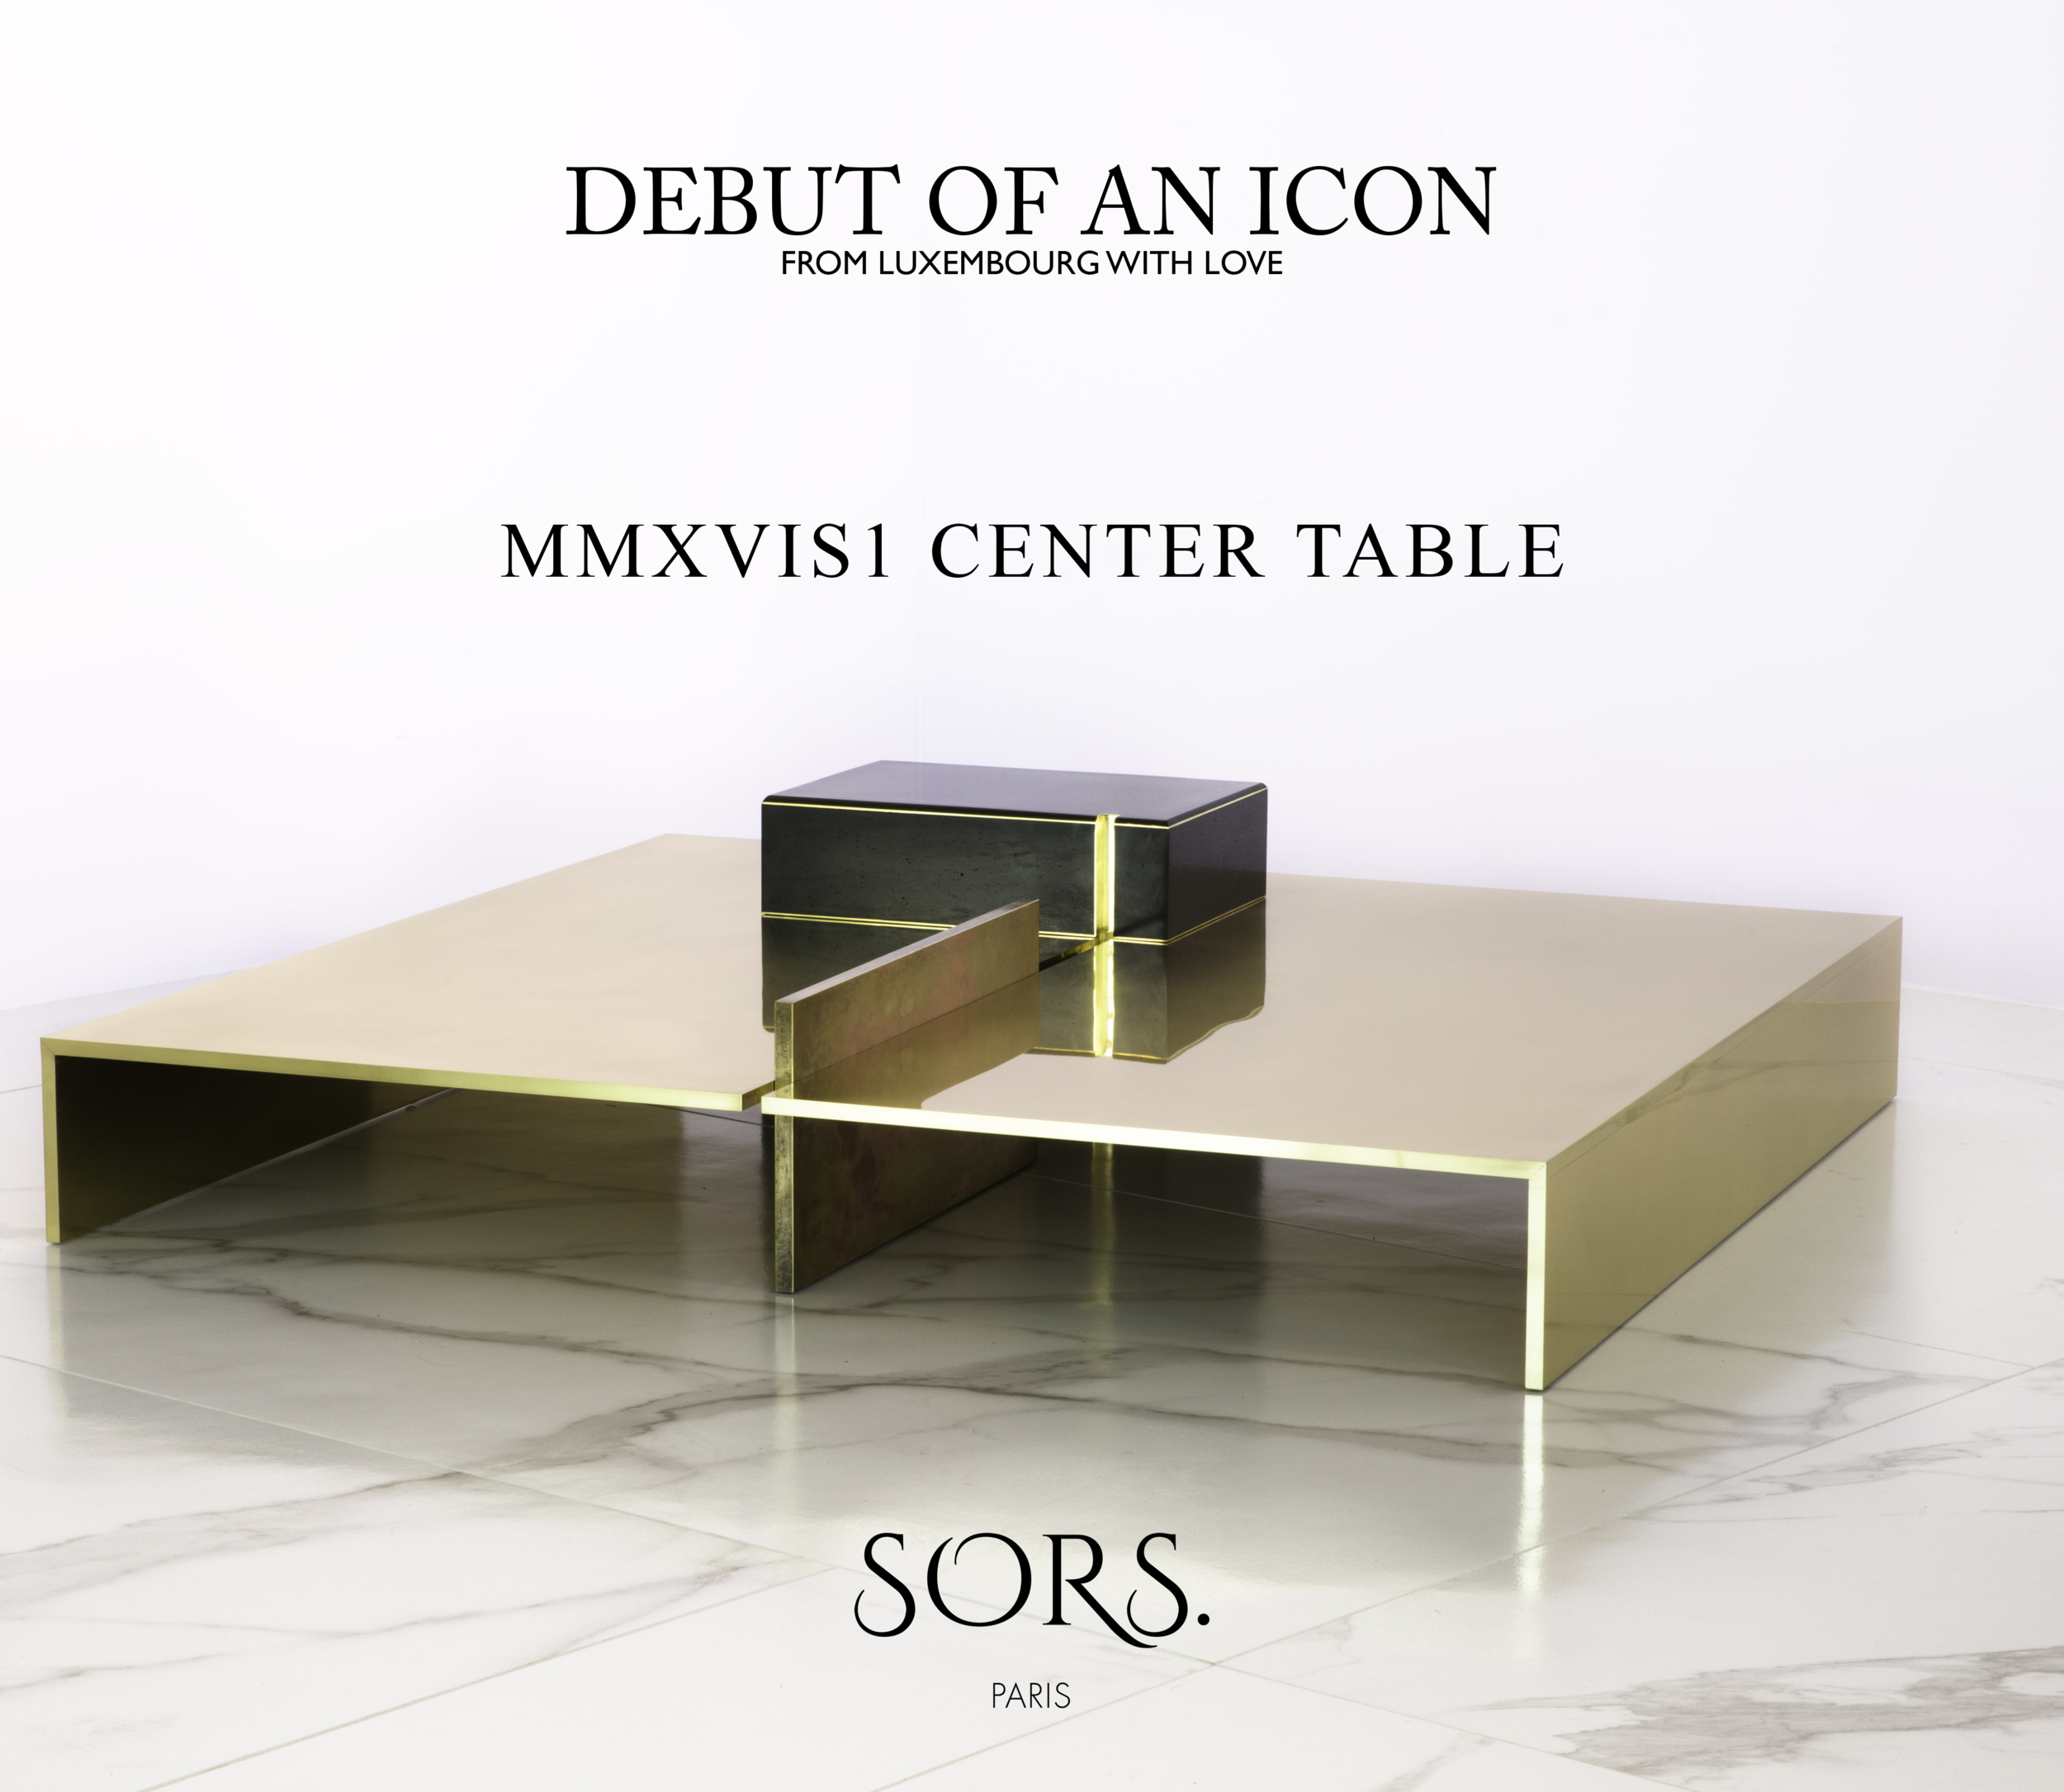 [[MMXVIS1 polished brass  and wood coffee table - All rights reserved///MMXVIS1 table basse en  laiton poli et bois - Tous droits réservés]]